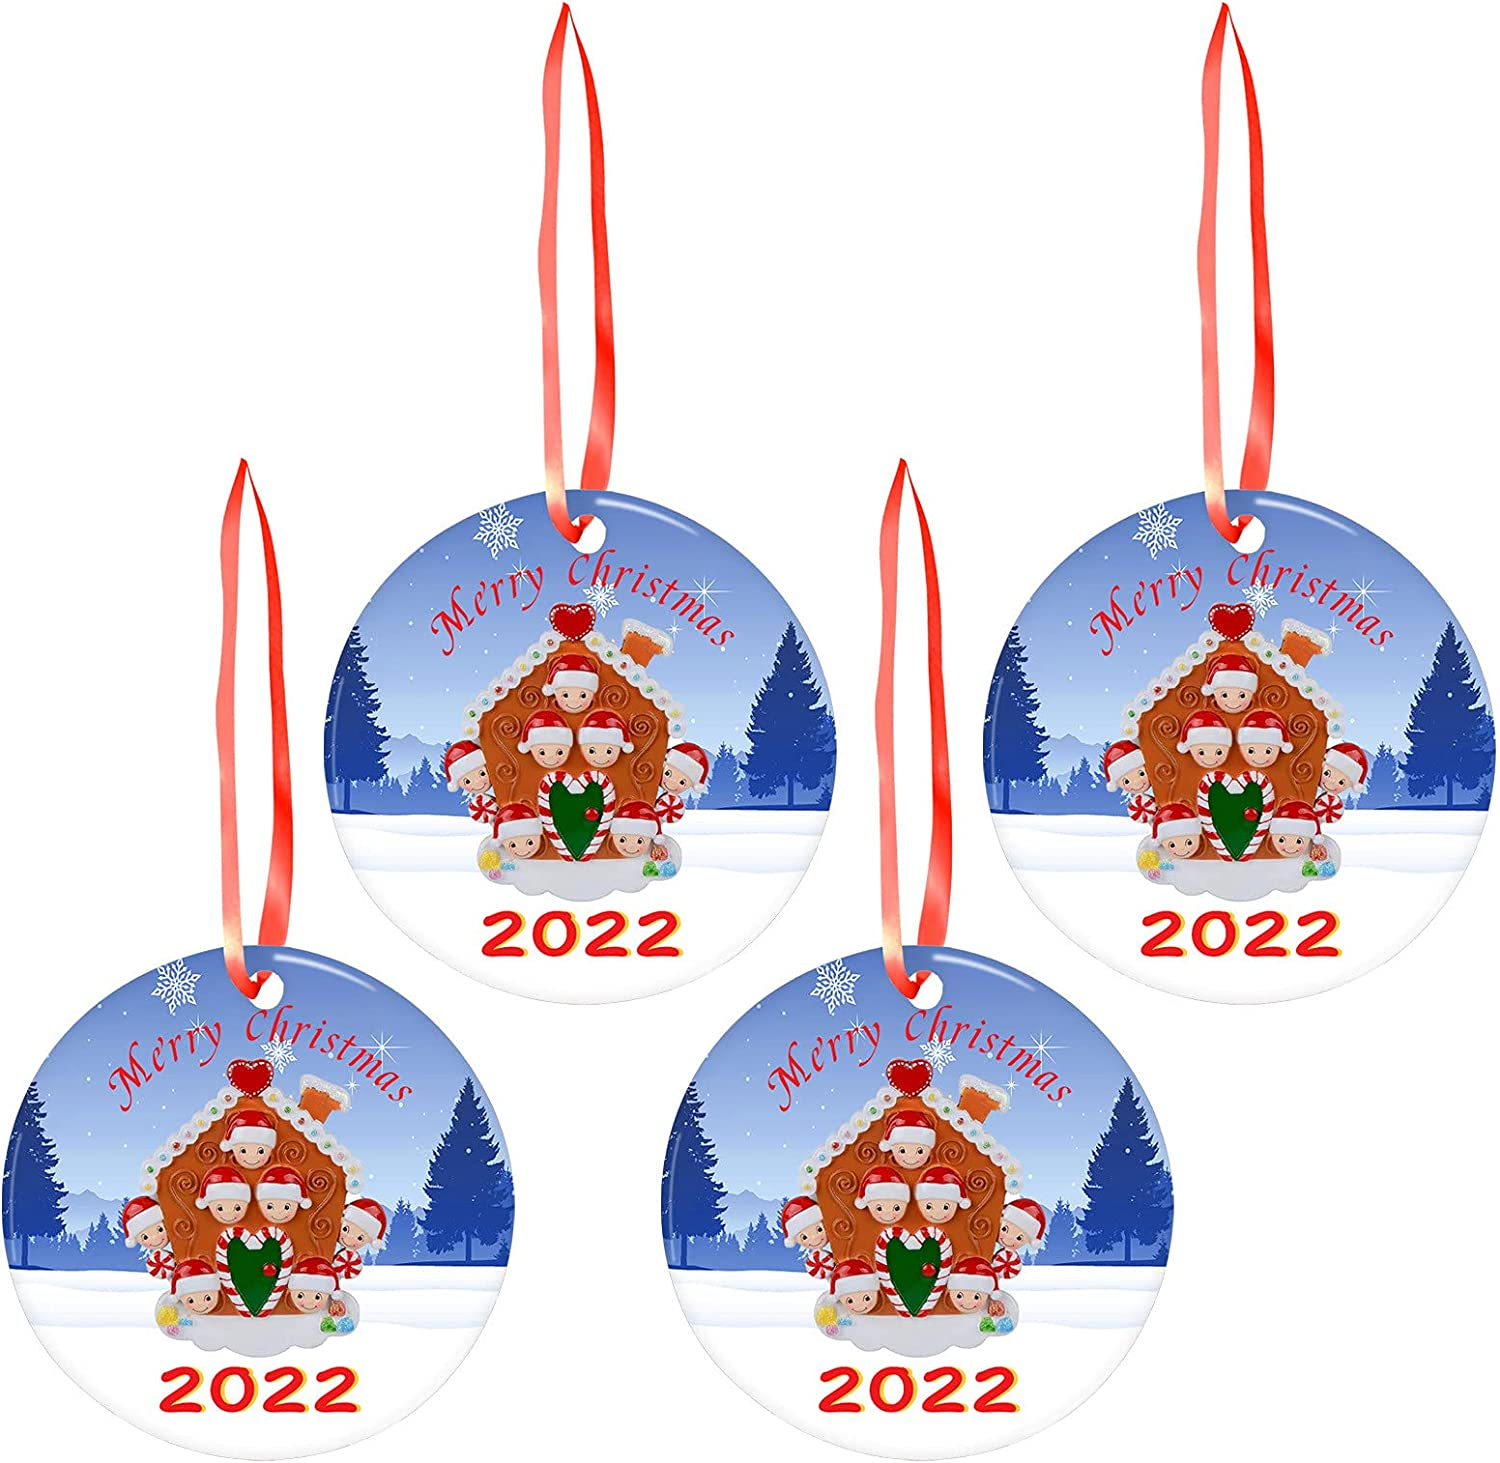 Free shipping anywhere in the nation Nuanshu Christmas Max 76% OFF Tree Decorations House P Print Round